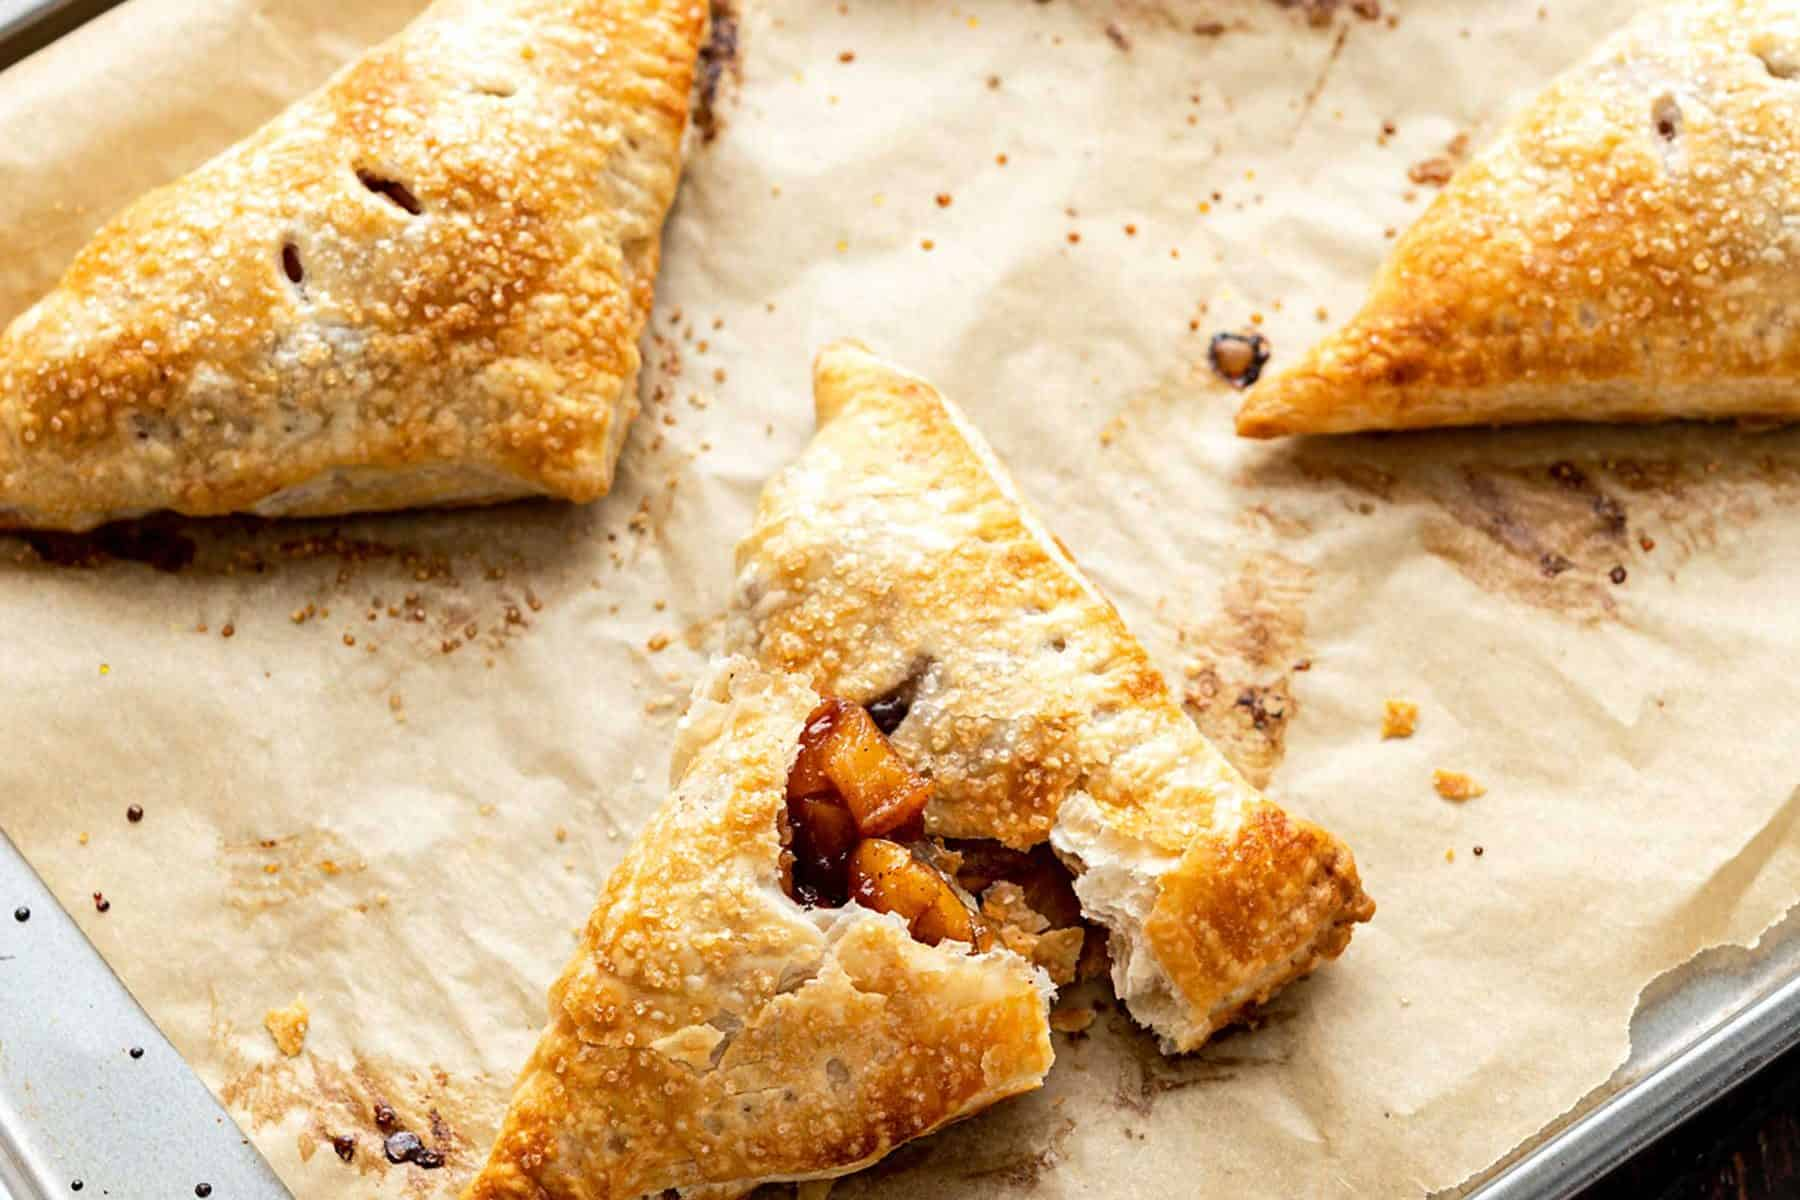 Four apple turnovers on a paper-lined baking sheet with apples